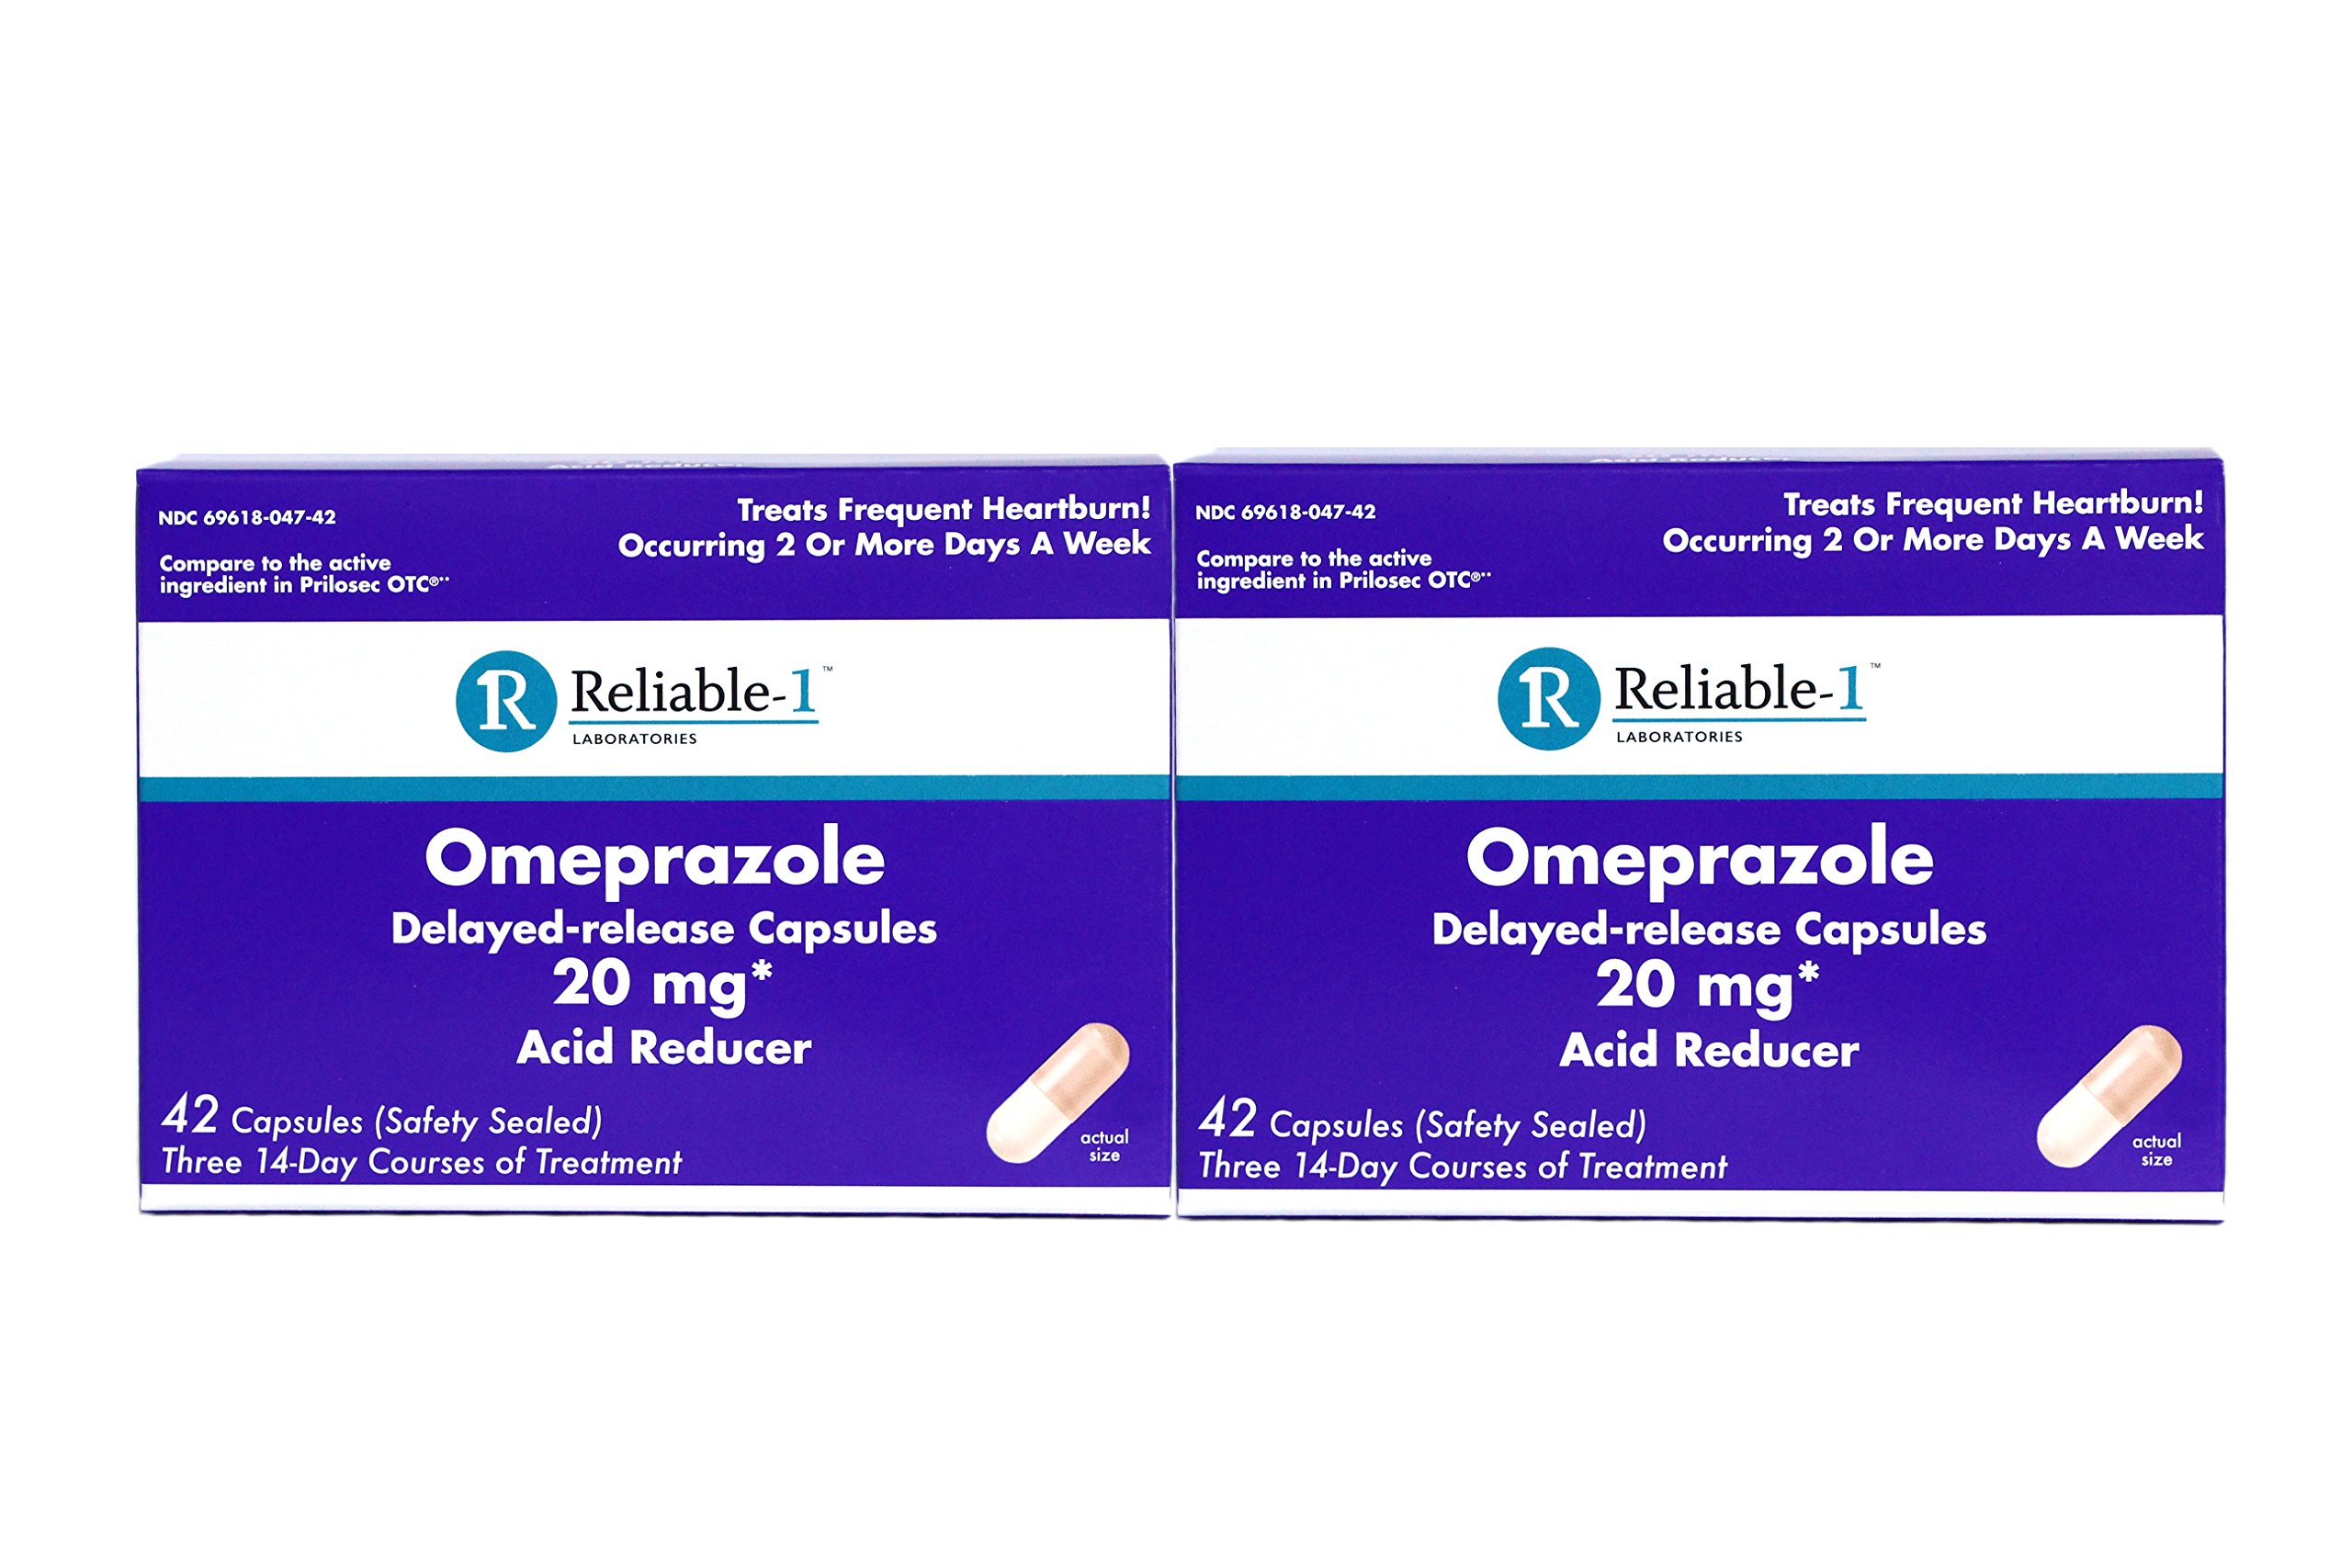 Reliable-1 Laboratories Omeprazole Delayed-Release Capsules 20Mg Acid Reducer 42 Count by Reliable-1 Laboratories